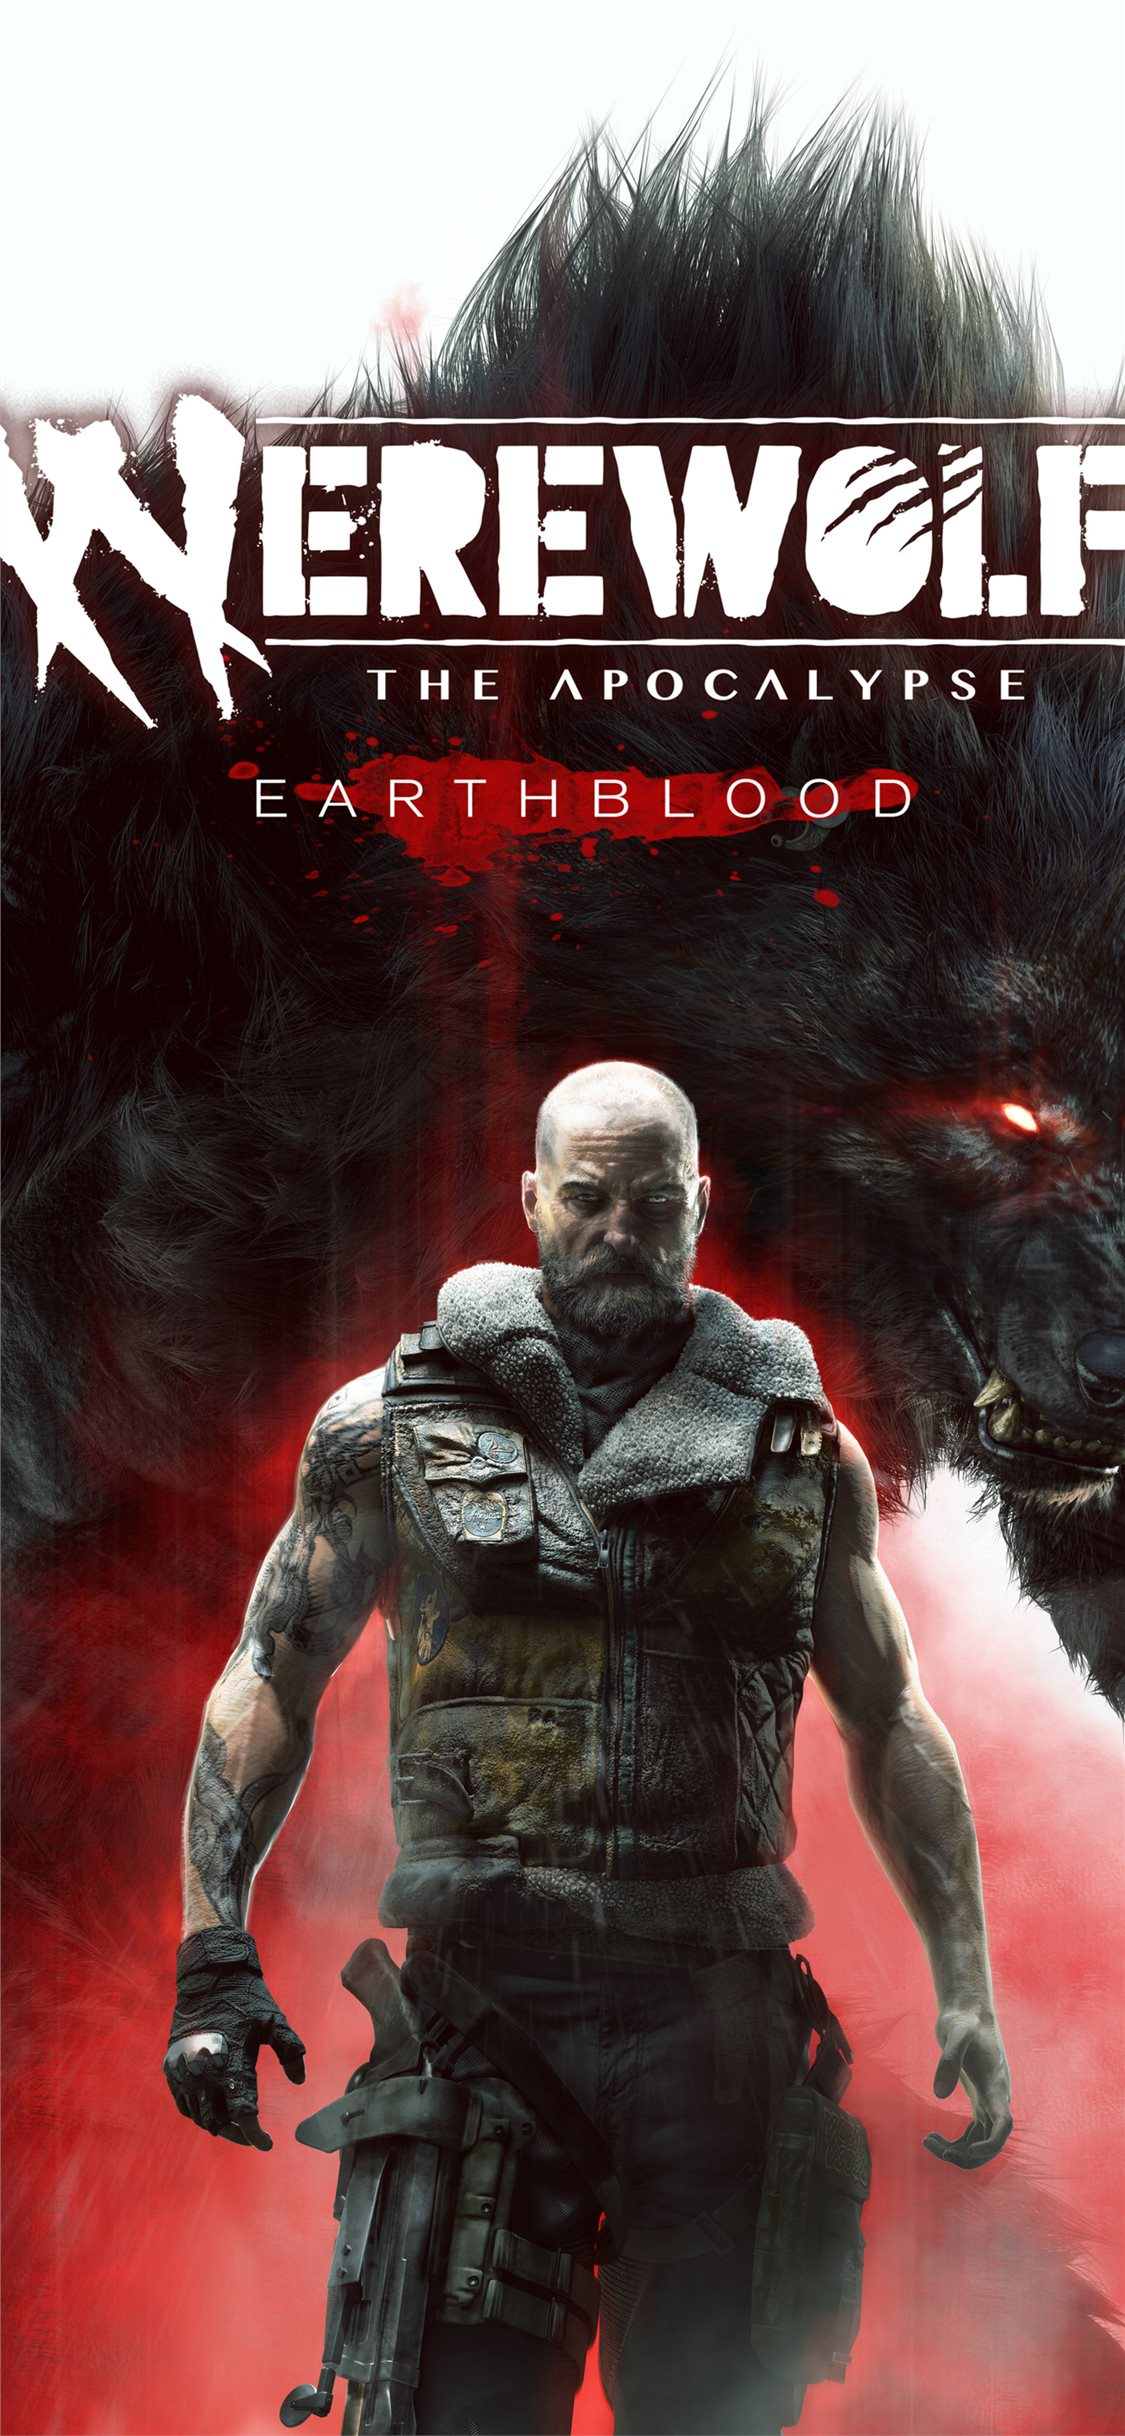 werewolf the apocalypse earthblood 2020 4k iPhone X Wallpapers 1125x2436